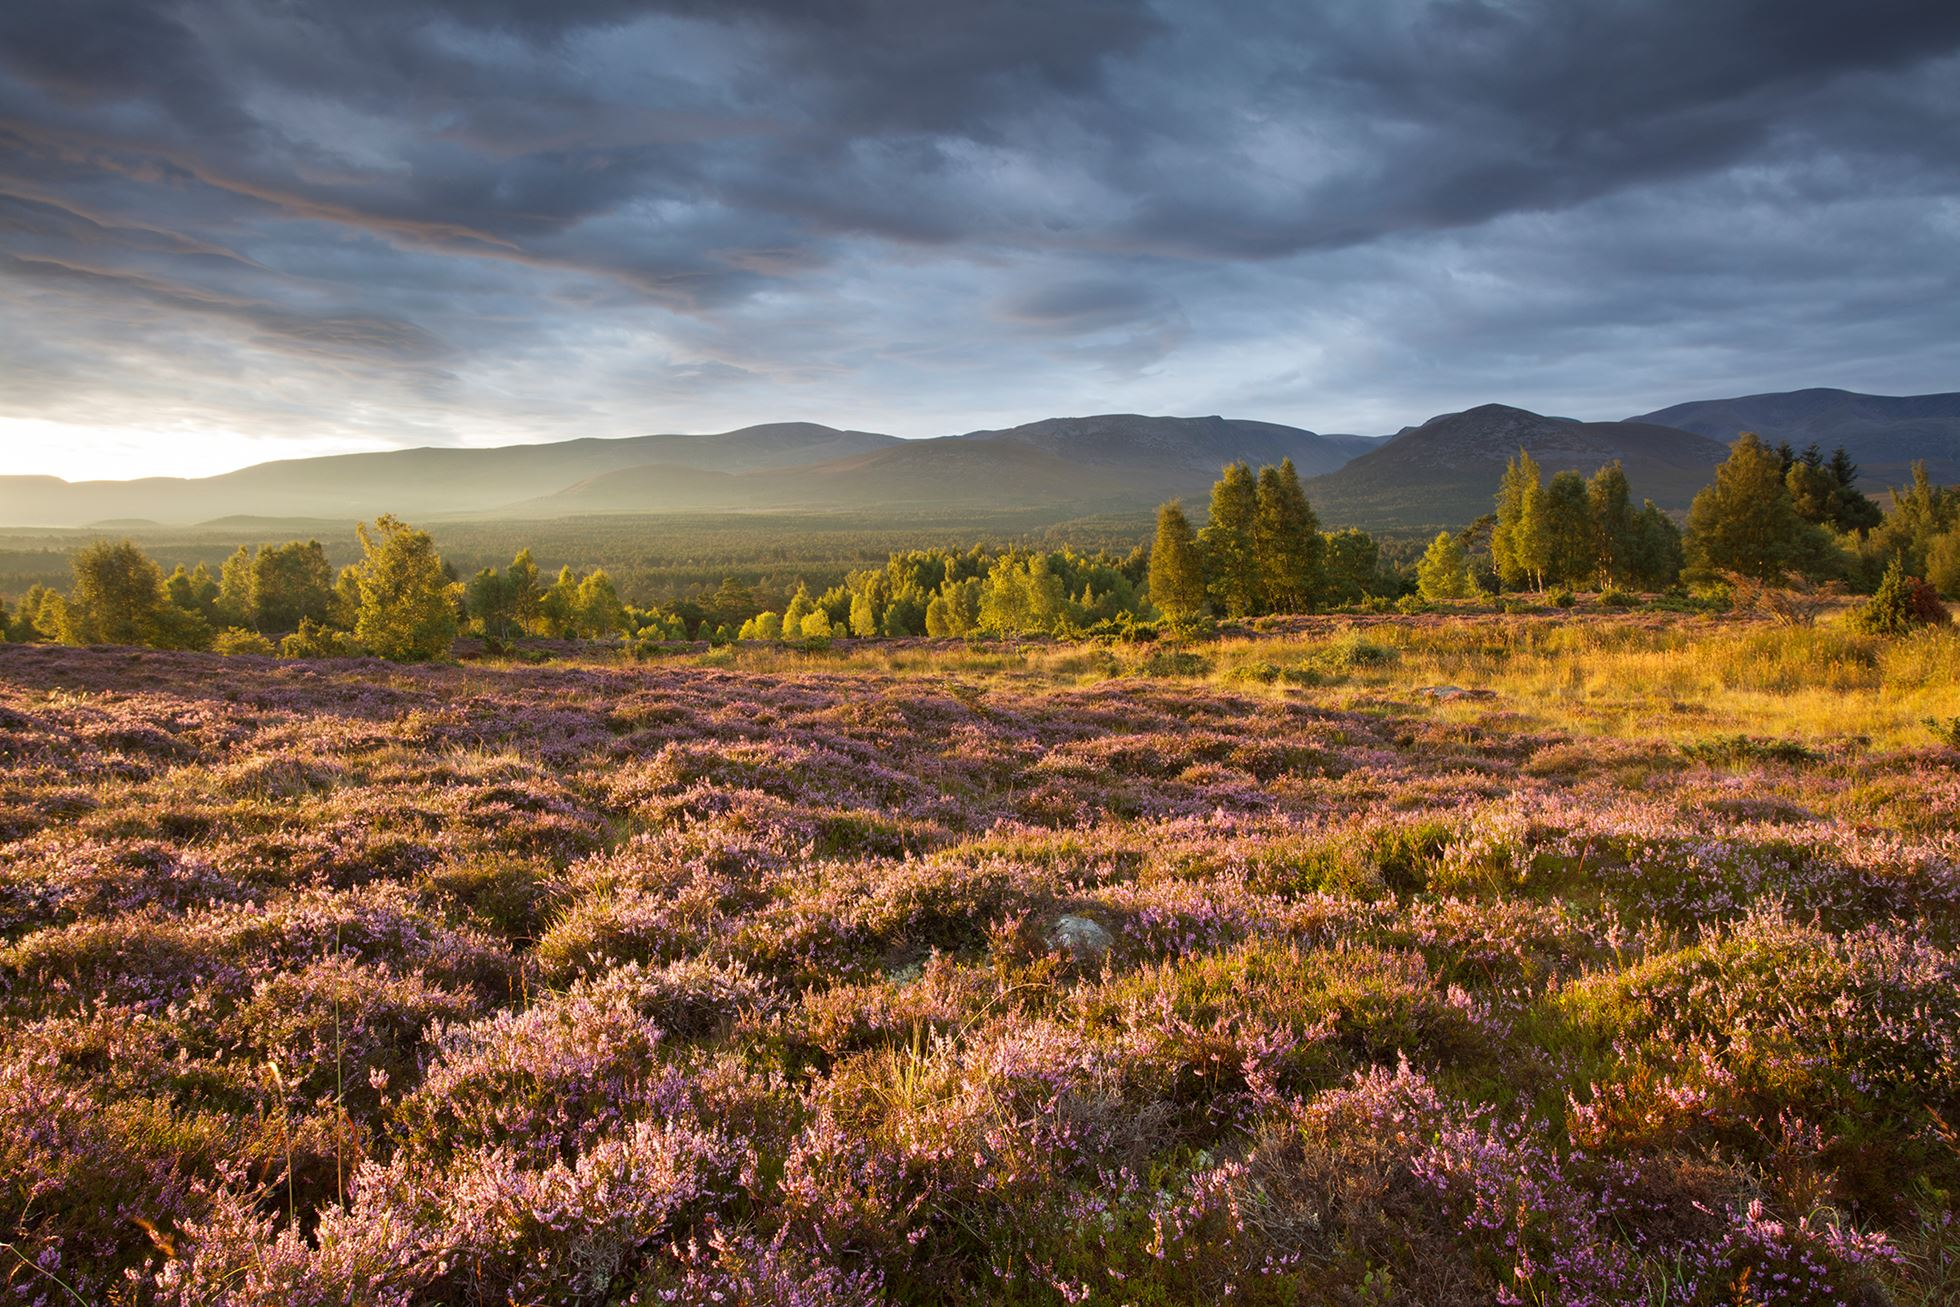 Heather moorland in flower, birch woodland and Cairngorm mountain range, Cairngorms National Park, Scotland